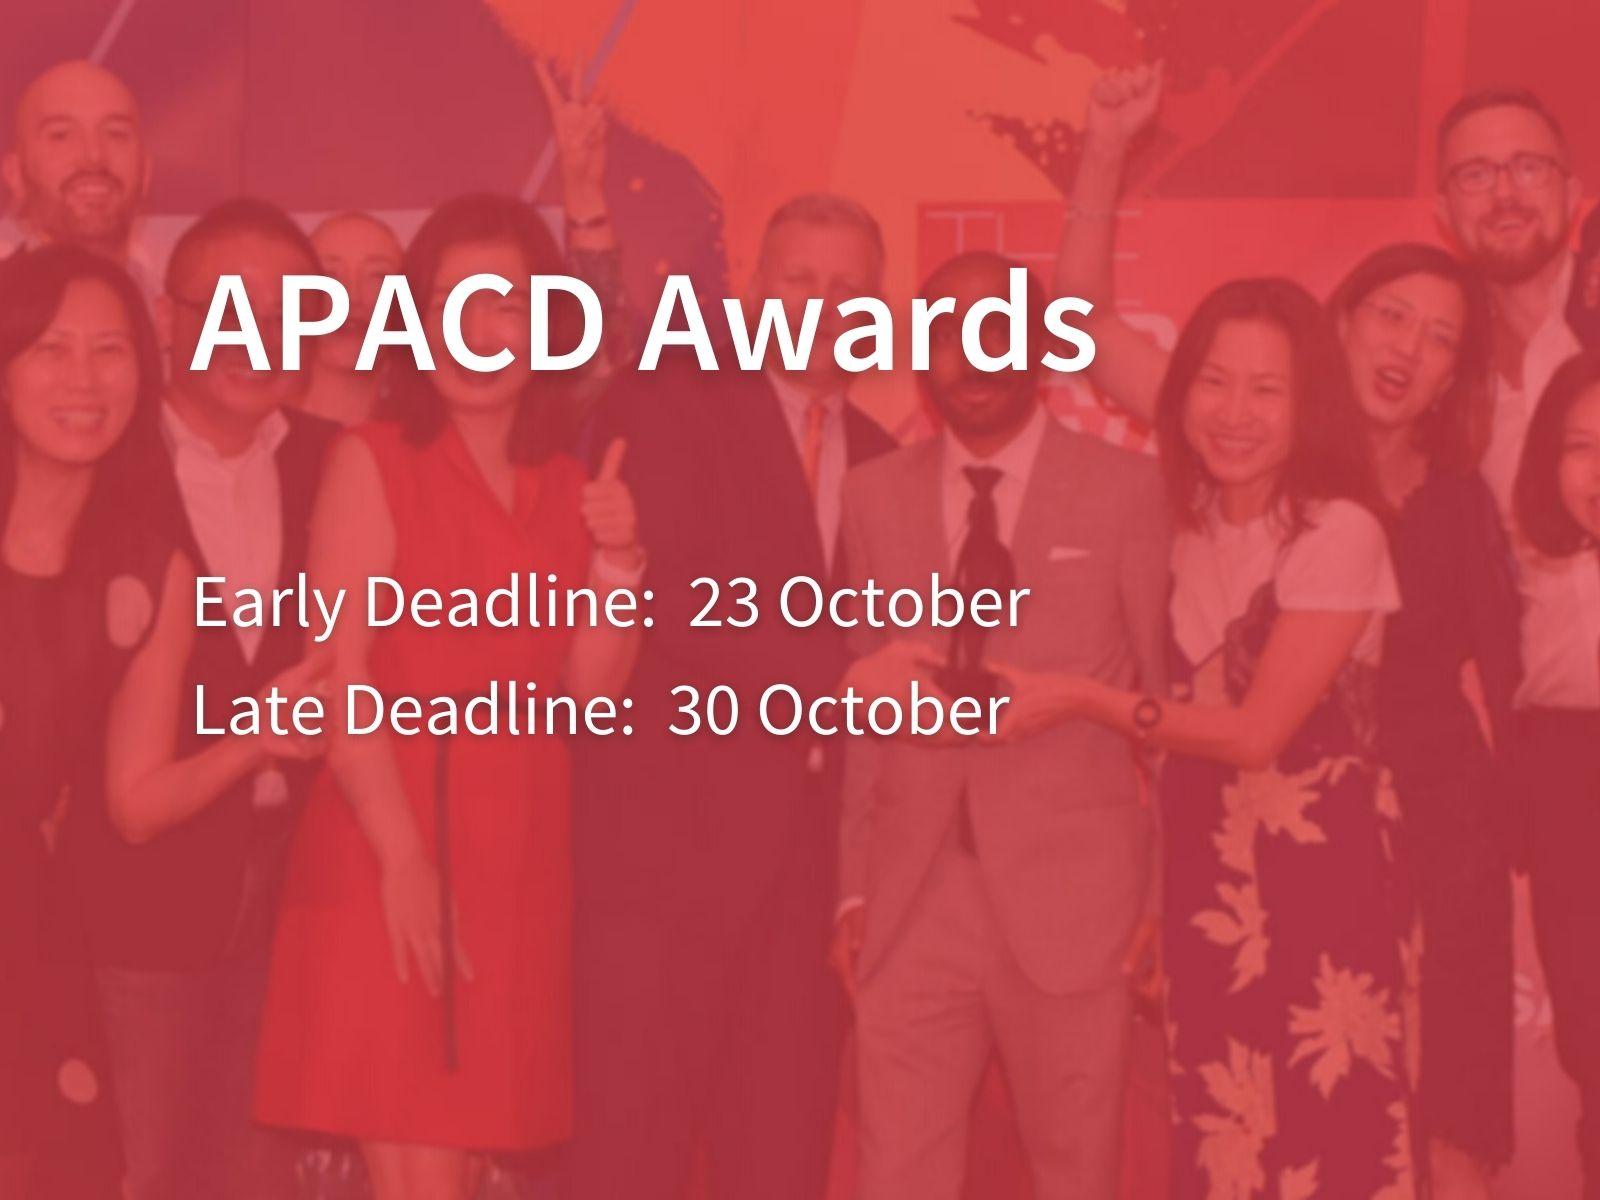 Enter Now: APACD Awards Relaunch To Recognise In-House Communications Excellence